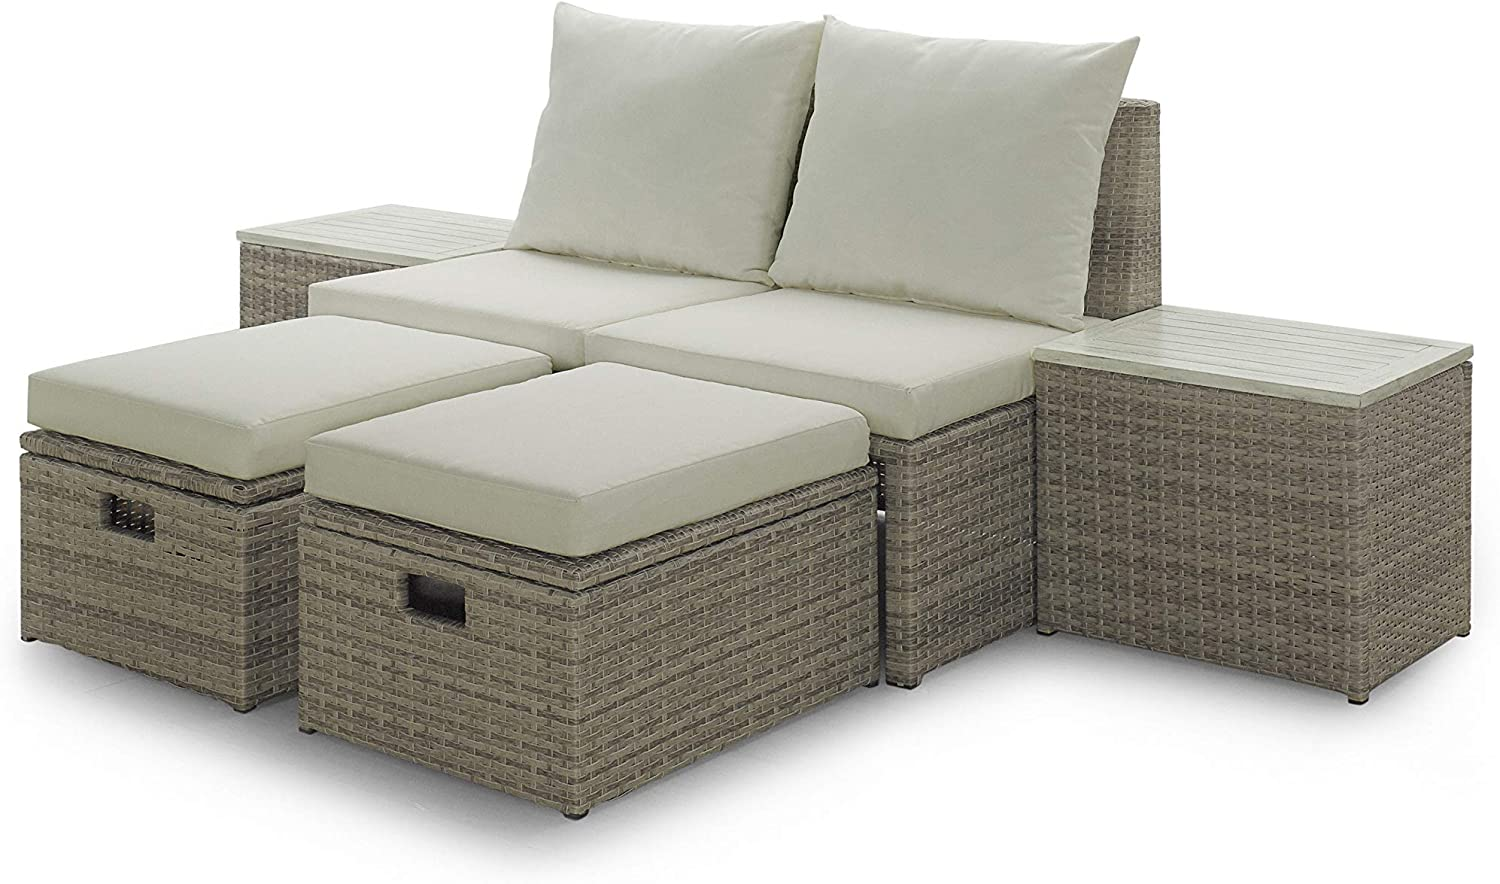 Sunset Garden SG25 Vista Outdoor Furniture Set, Cream